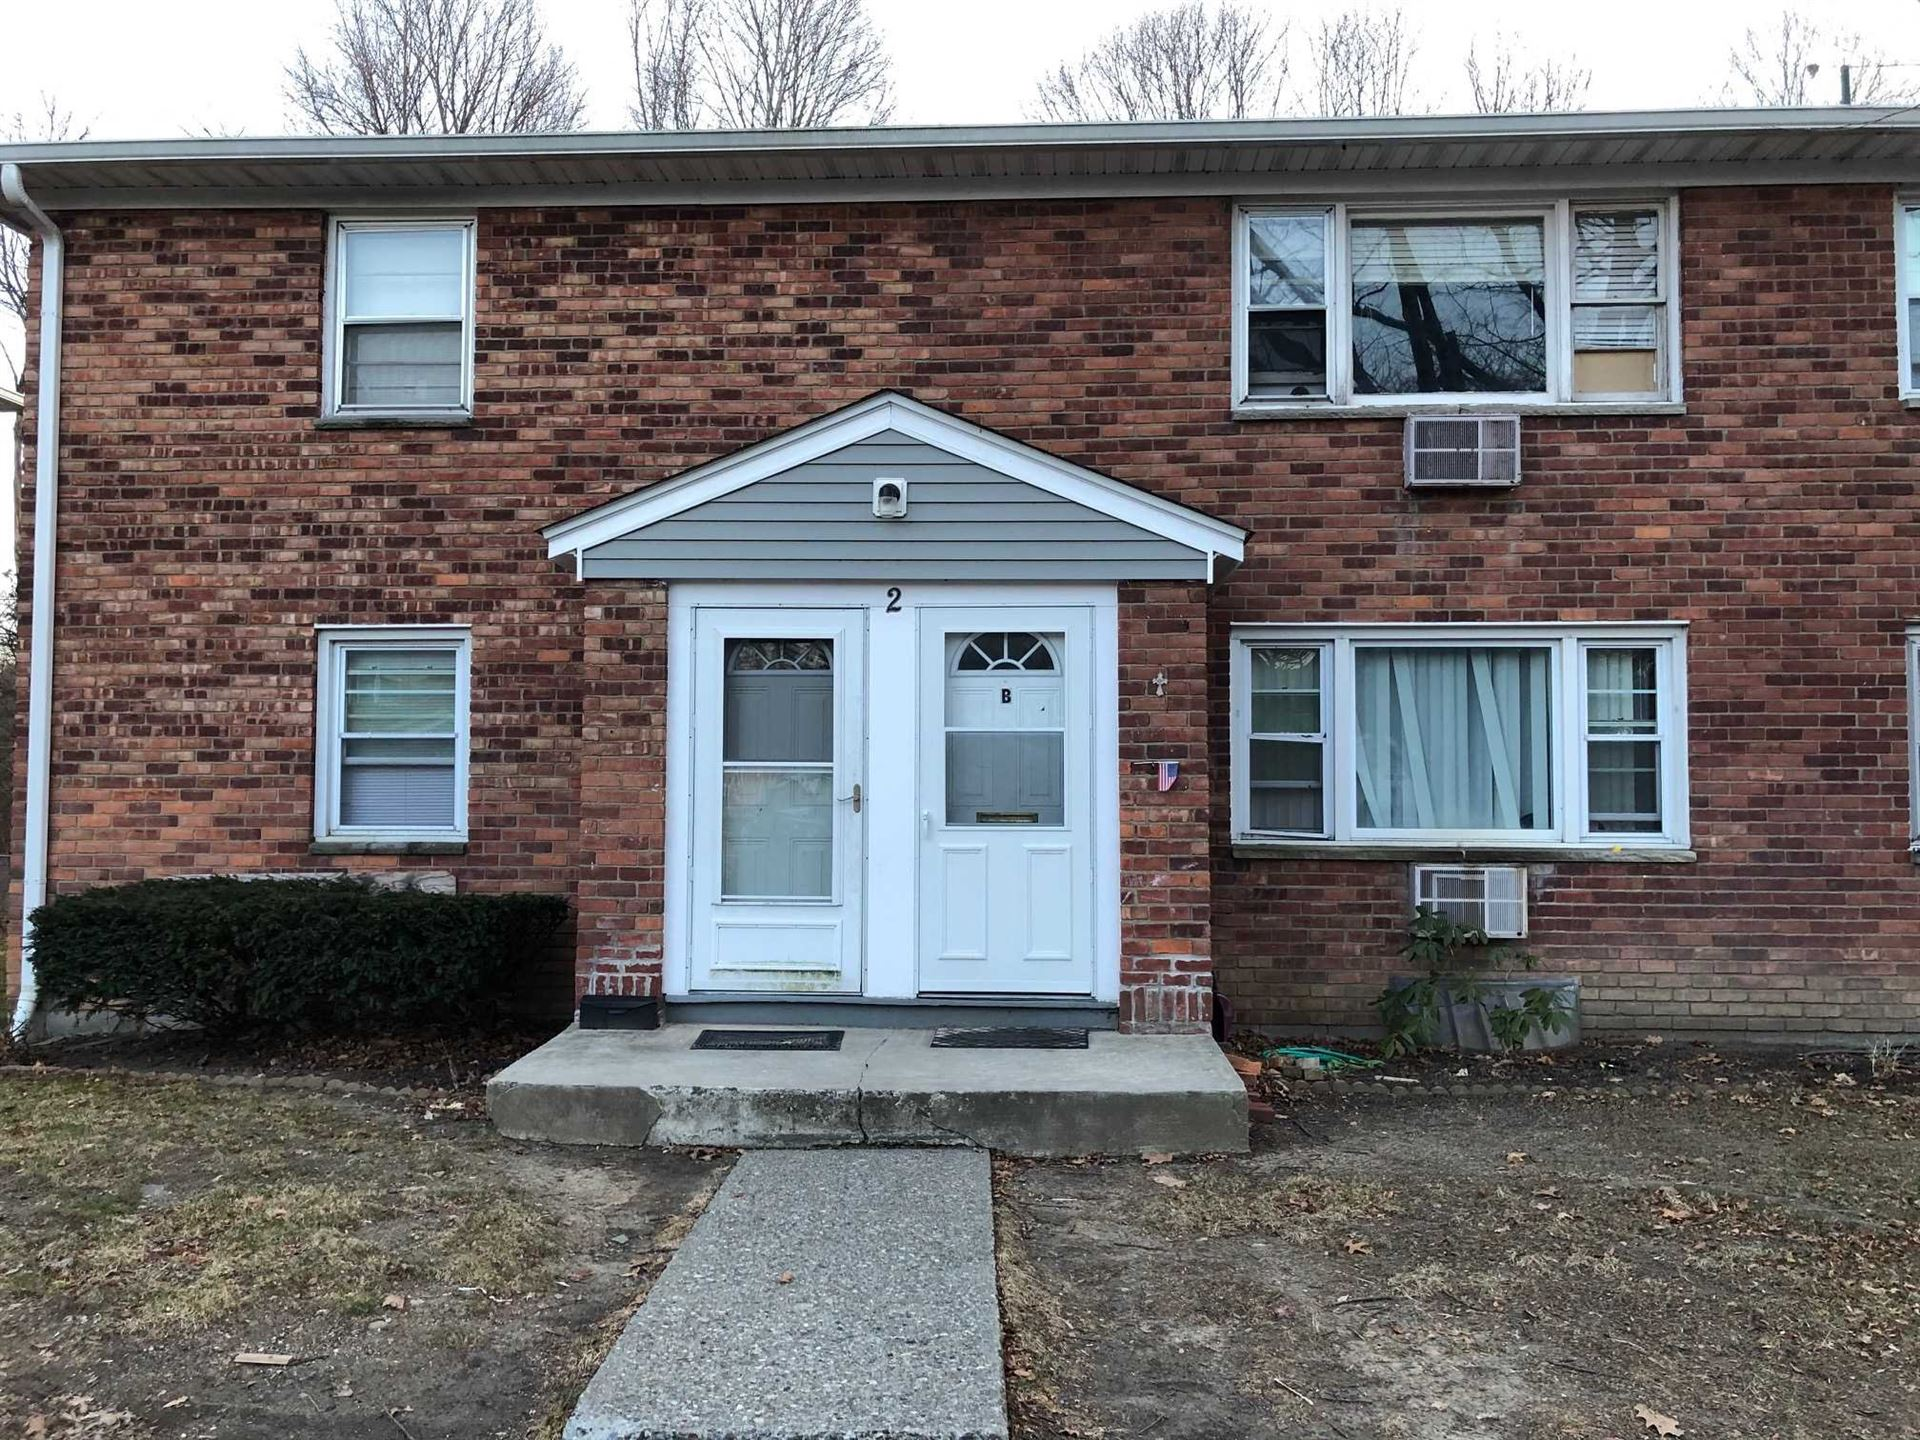 1668 ROUTE 9, Wappingers Falls, NY 12590 - #: 398760